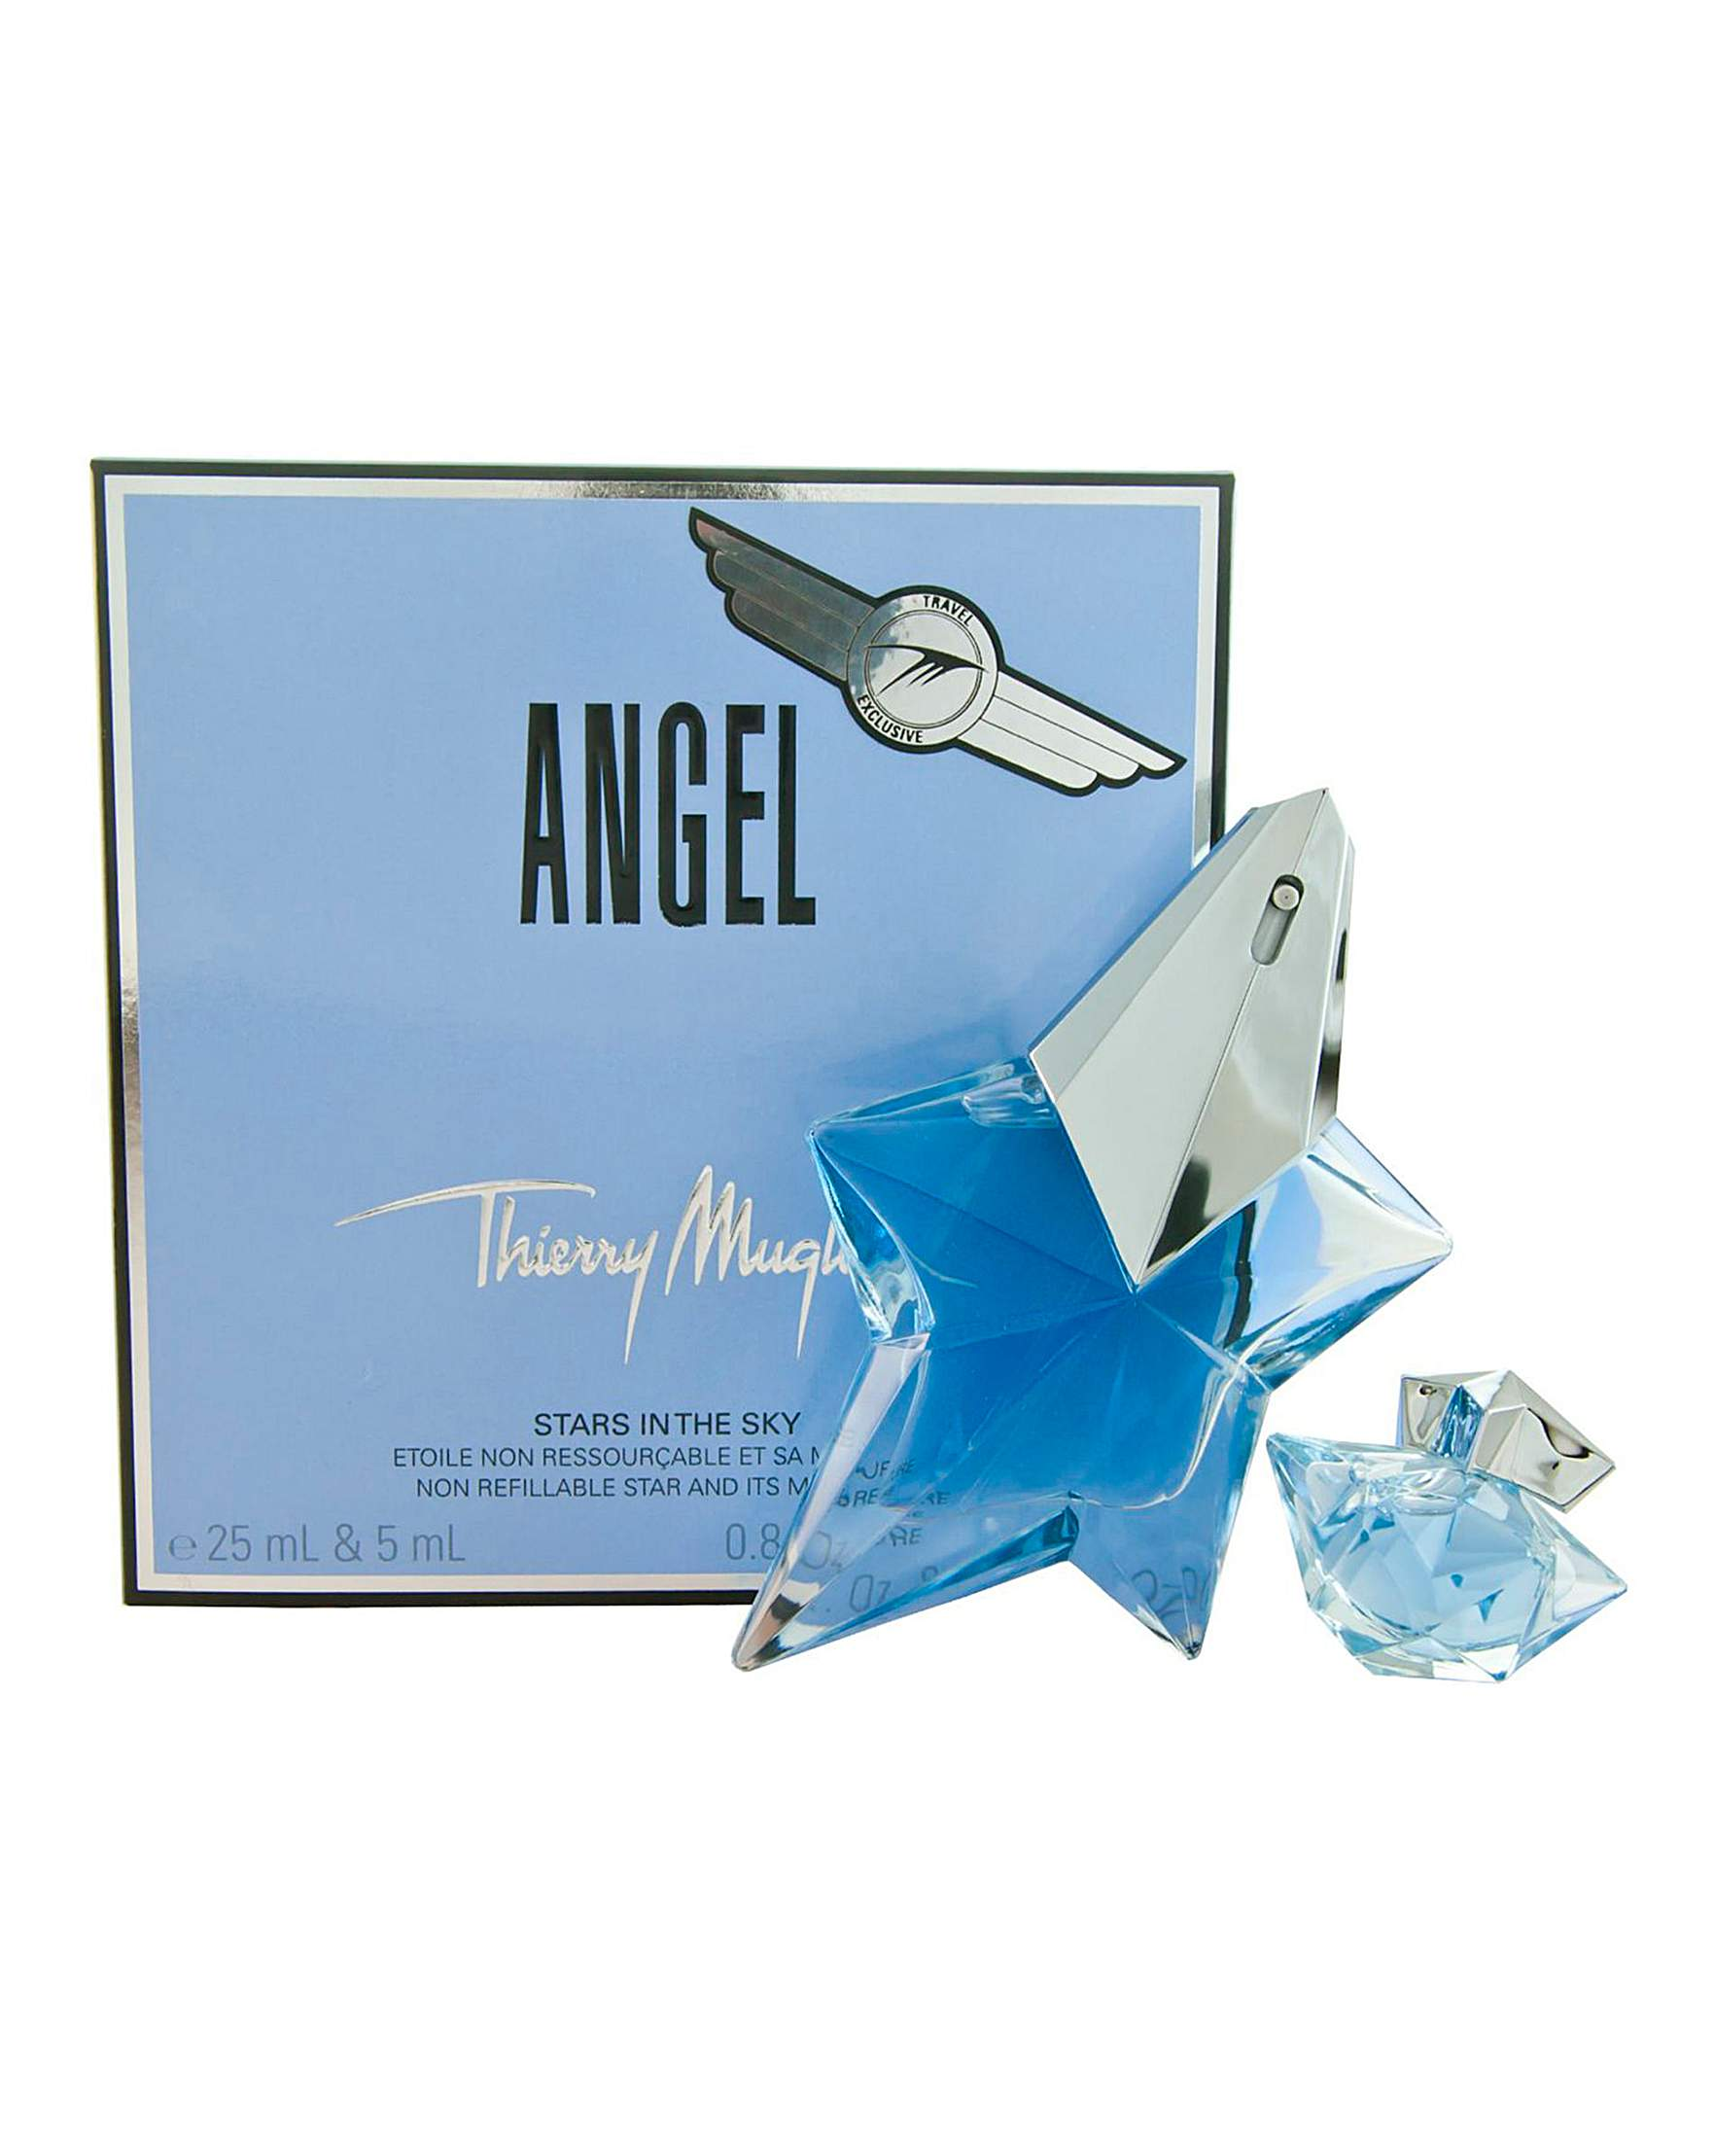 46c3875aa26a5 Angel Star In The Sky By Thierry Mugler Non Refillable SET 2 PCS For Women s